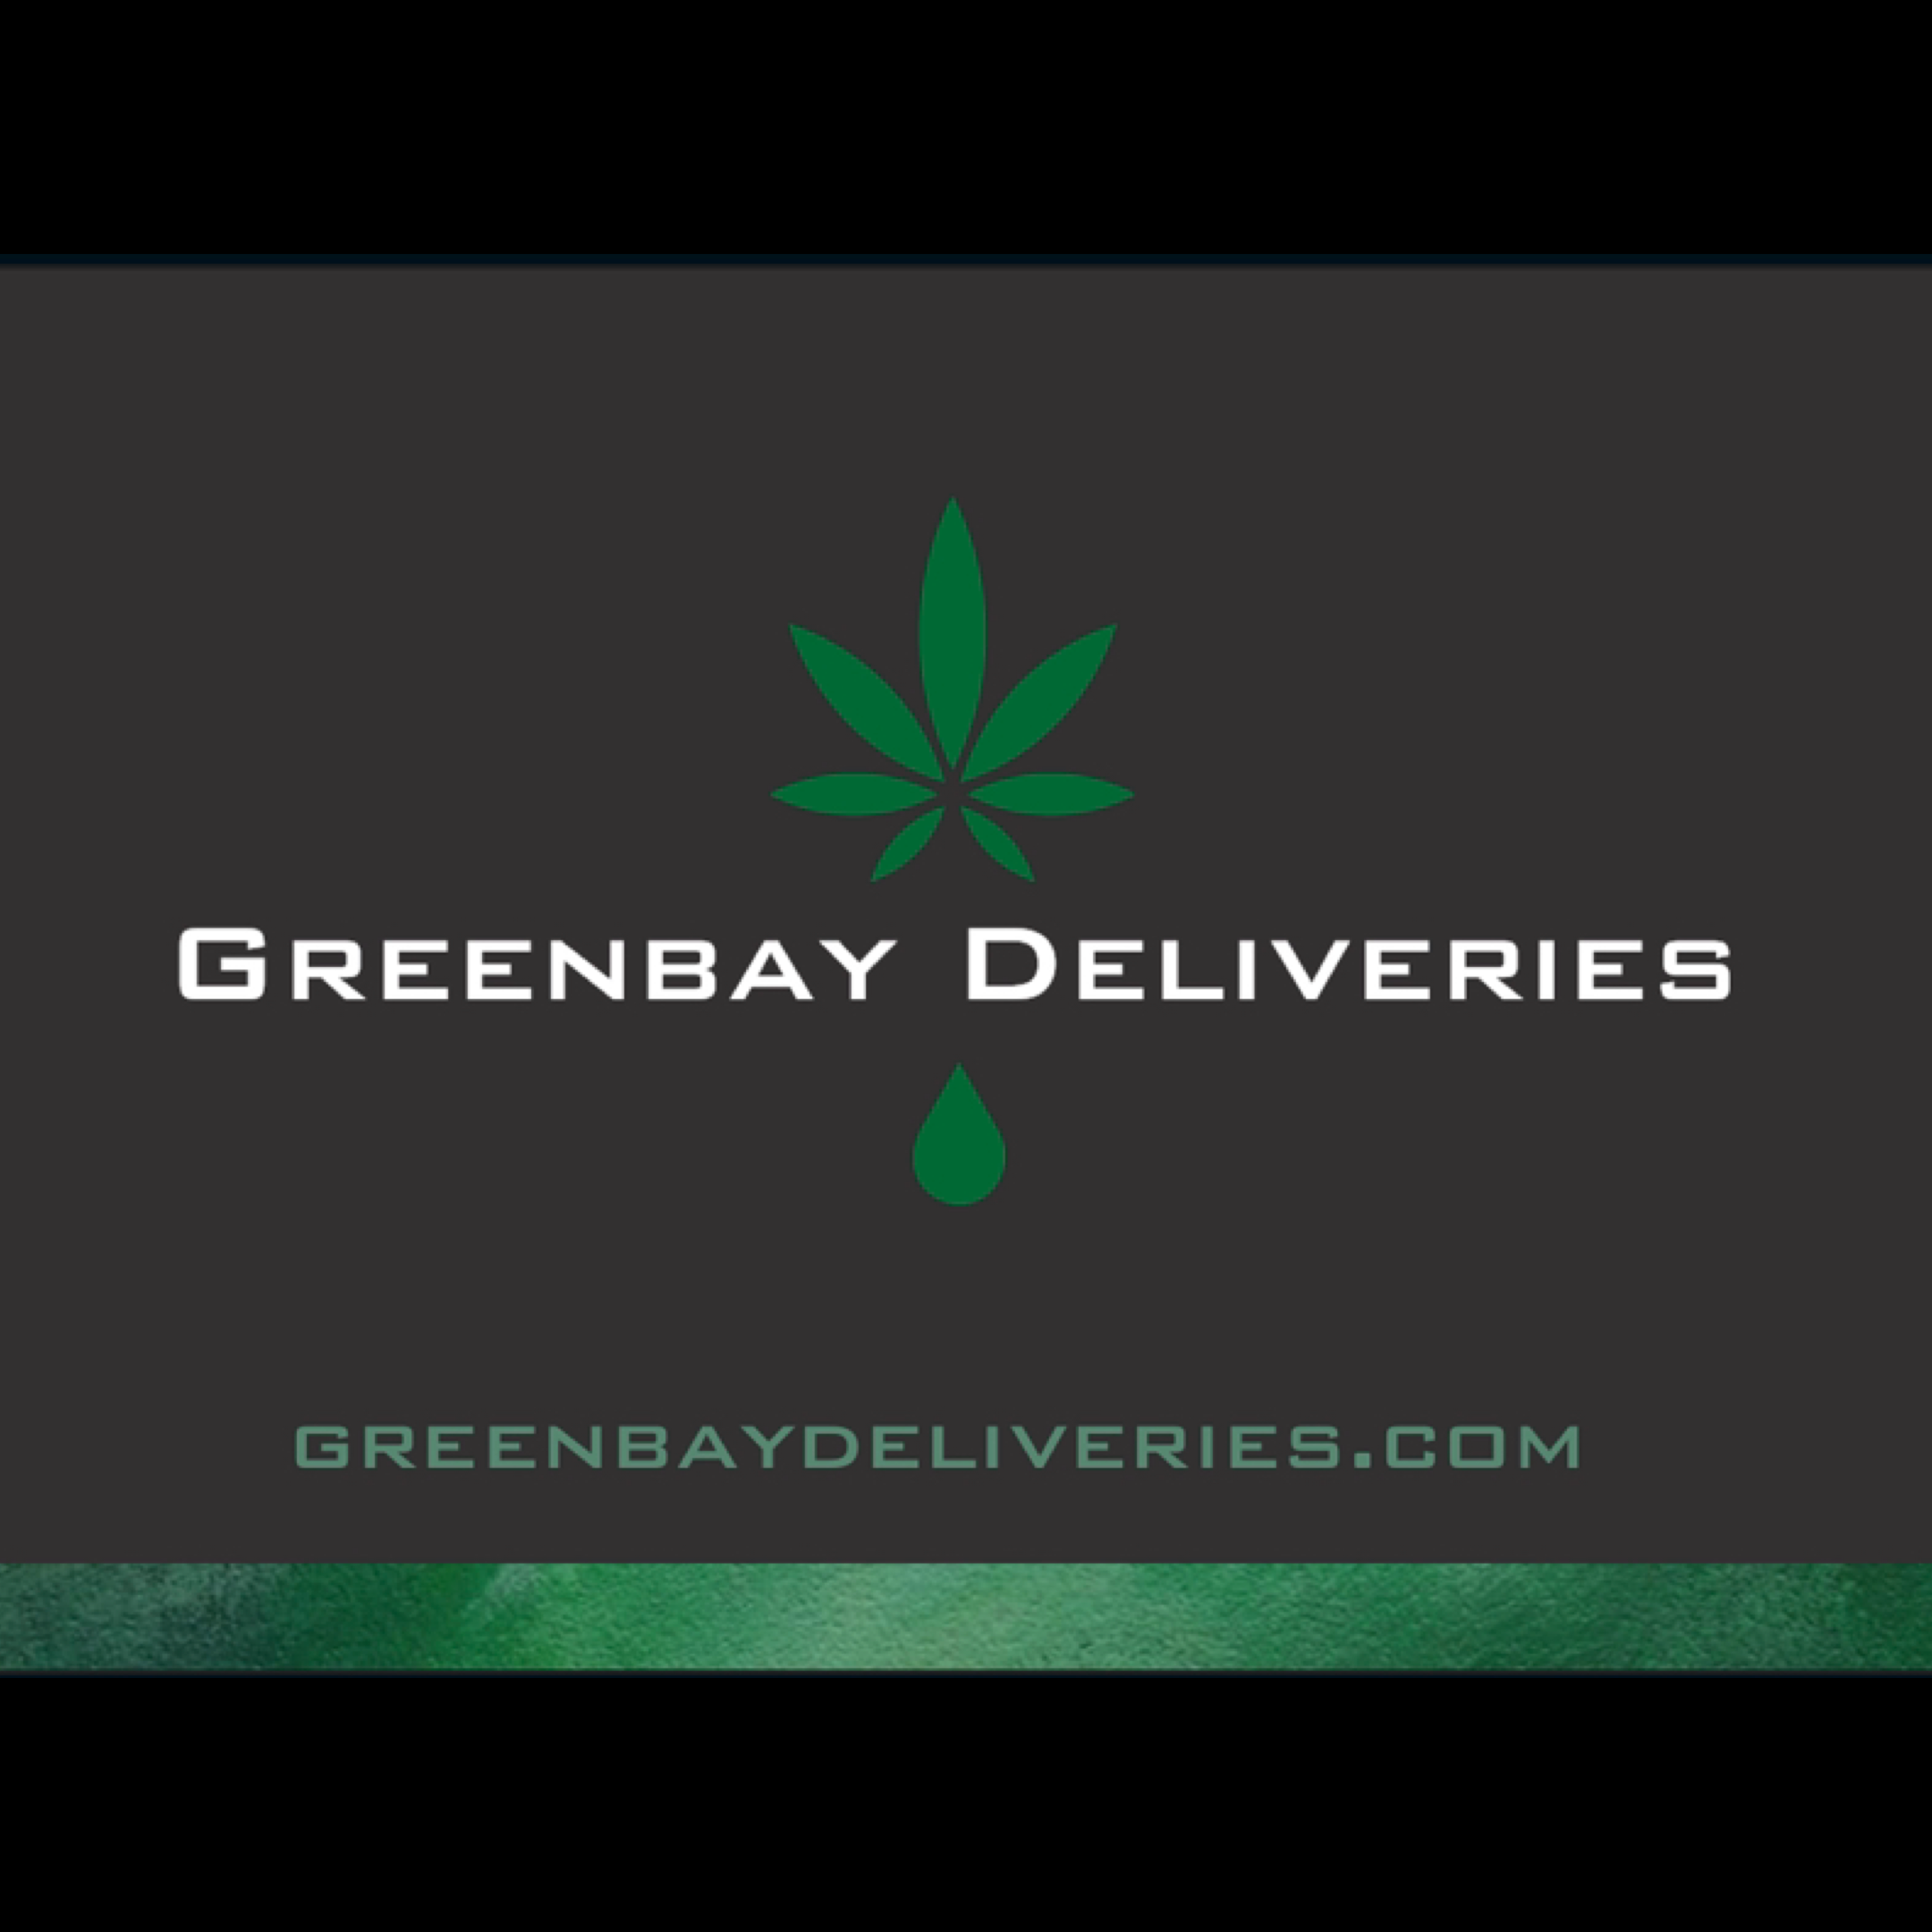 Greenbay Deliveries